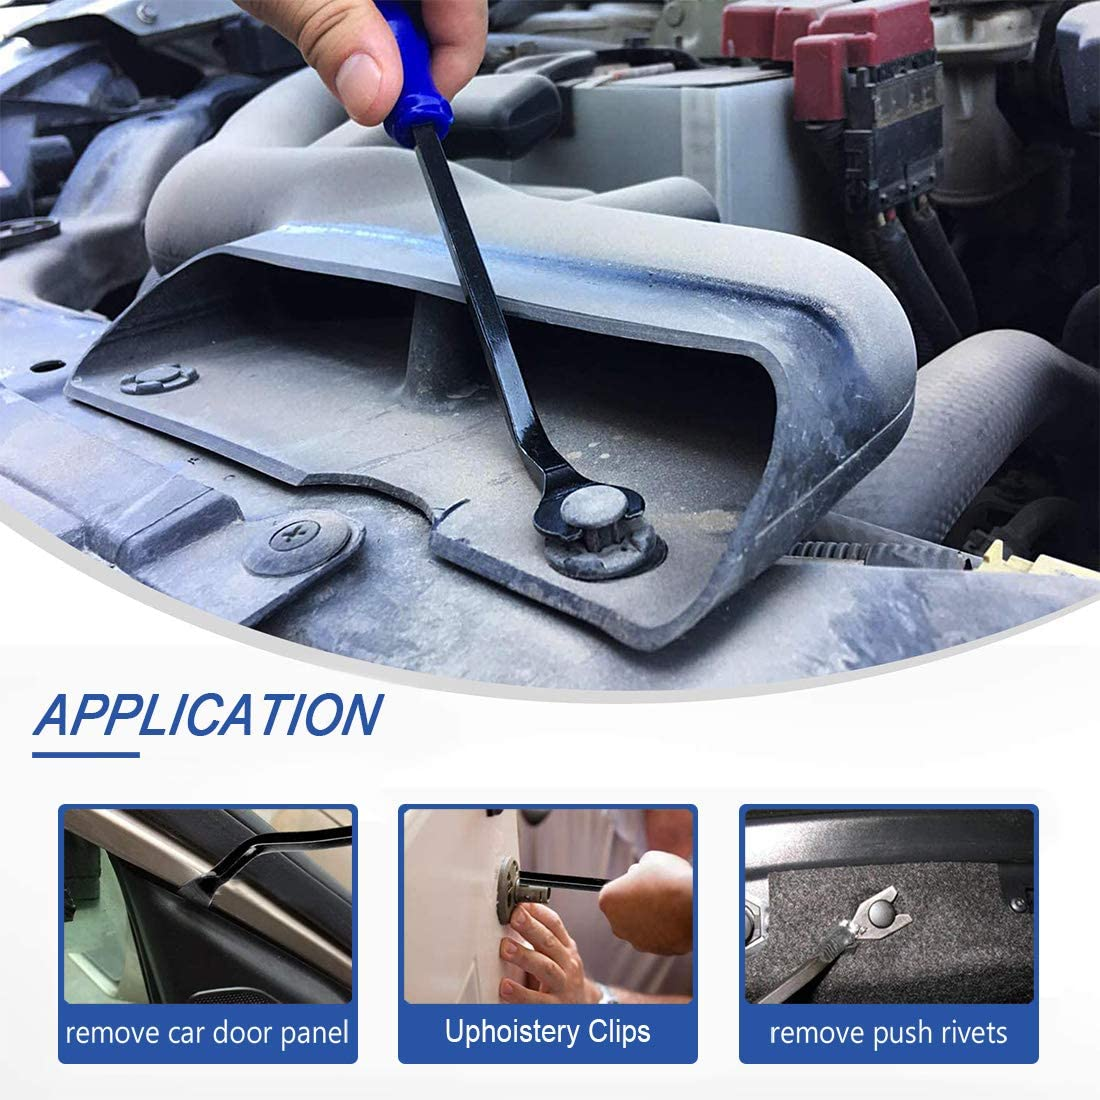 6 PCS Auto Trim Removal Tool Kit with Circuit Tester,No-Scratch Pry Tool Kit for Car Door Clip Panel /& Audio Dashboard Dismantle,Bumper Retainer Clips Fasteners Remover